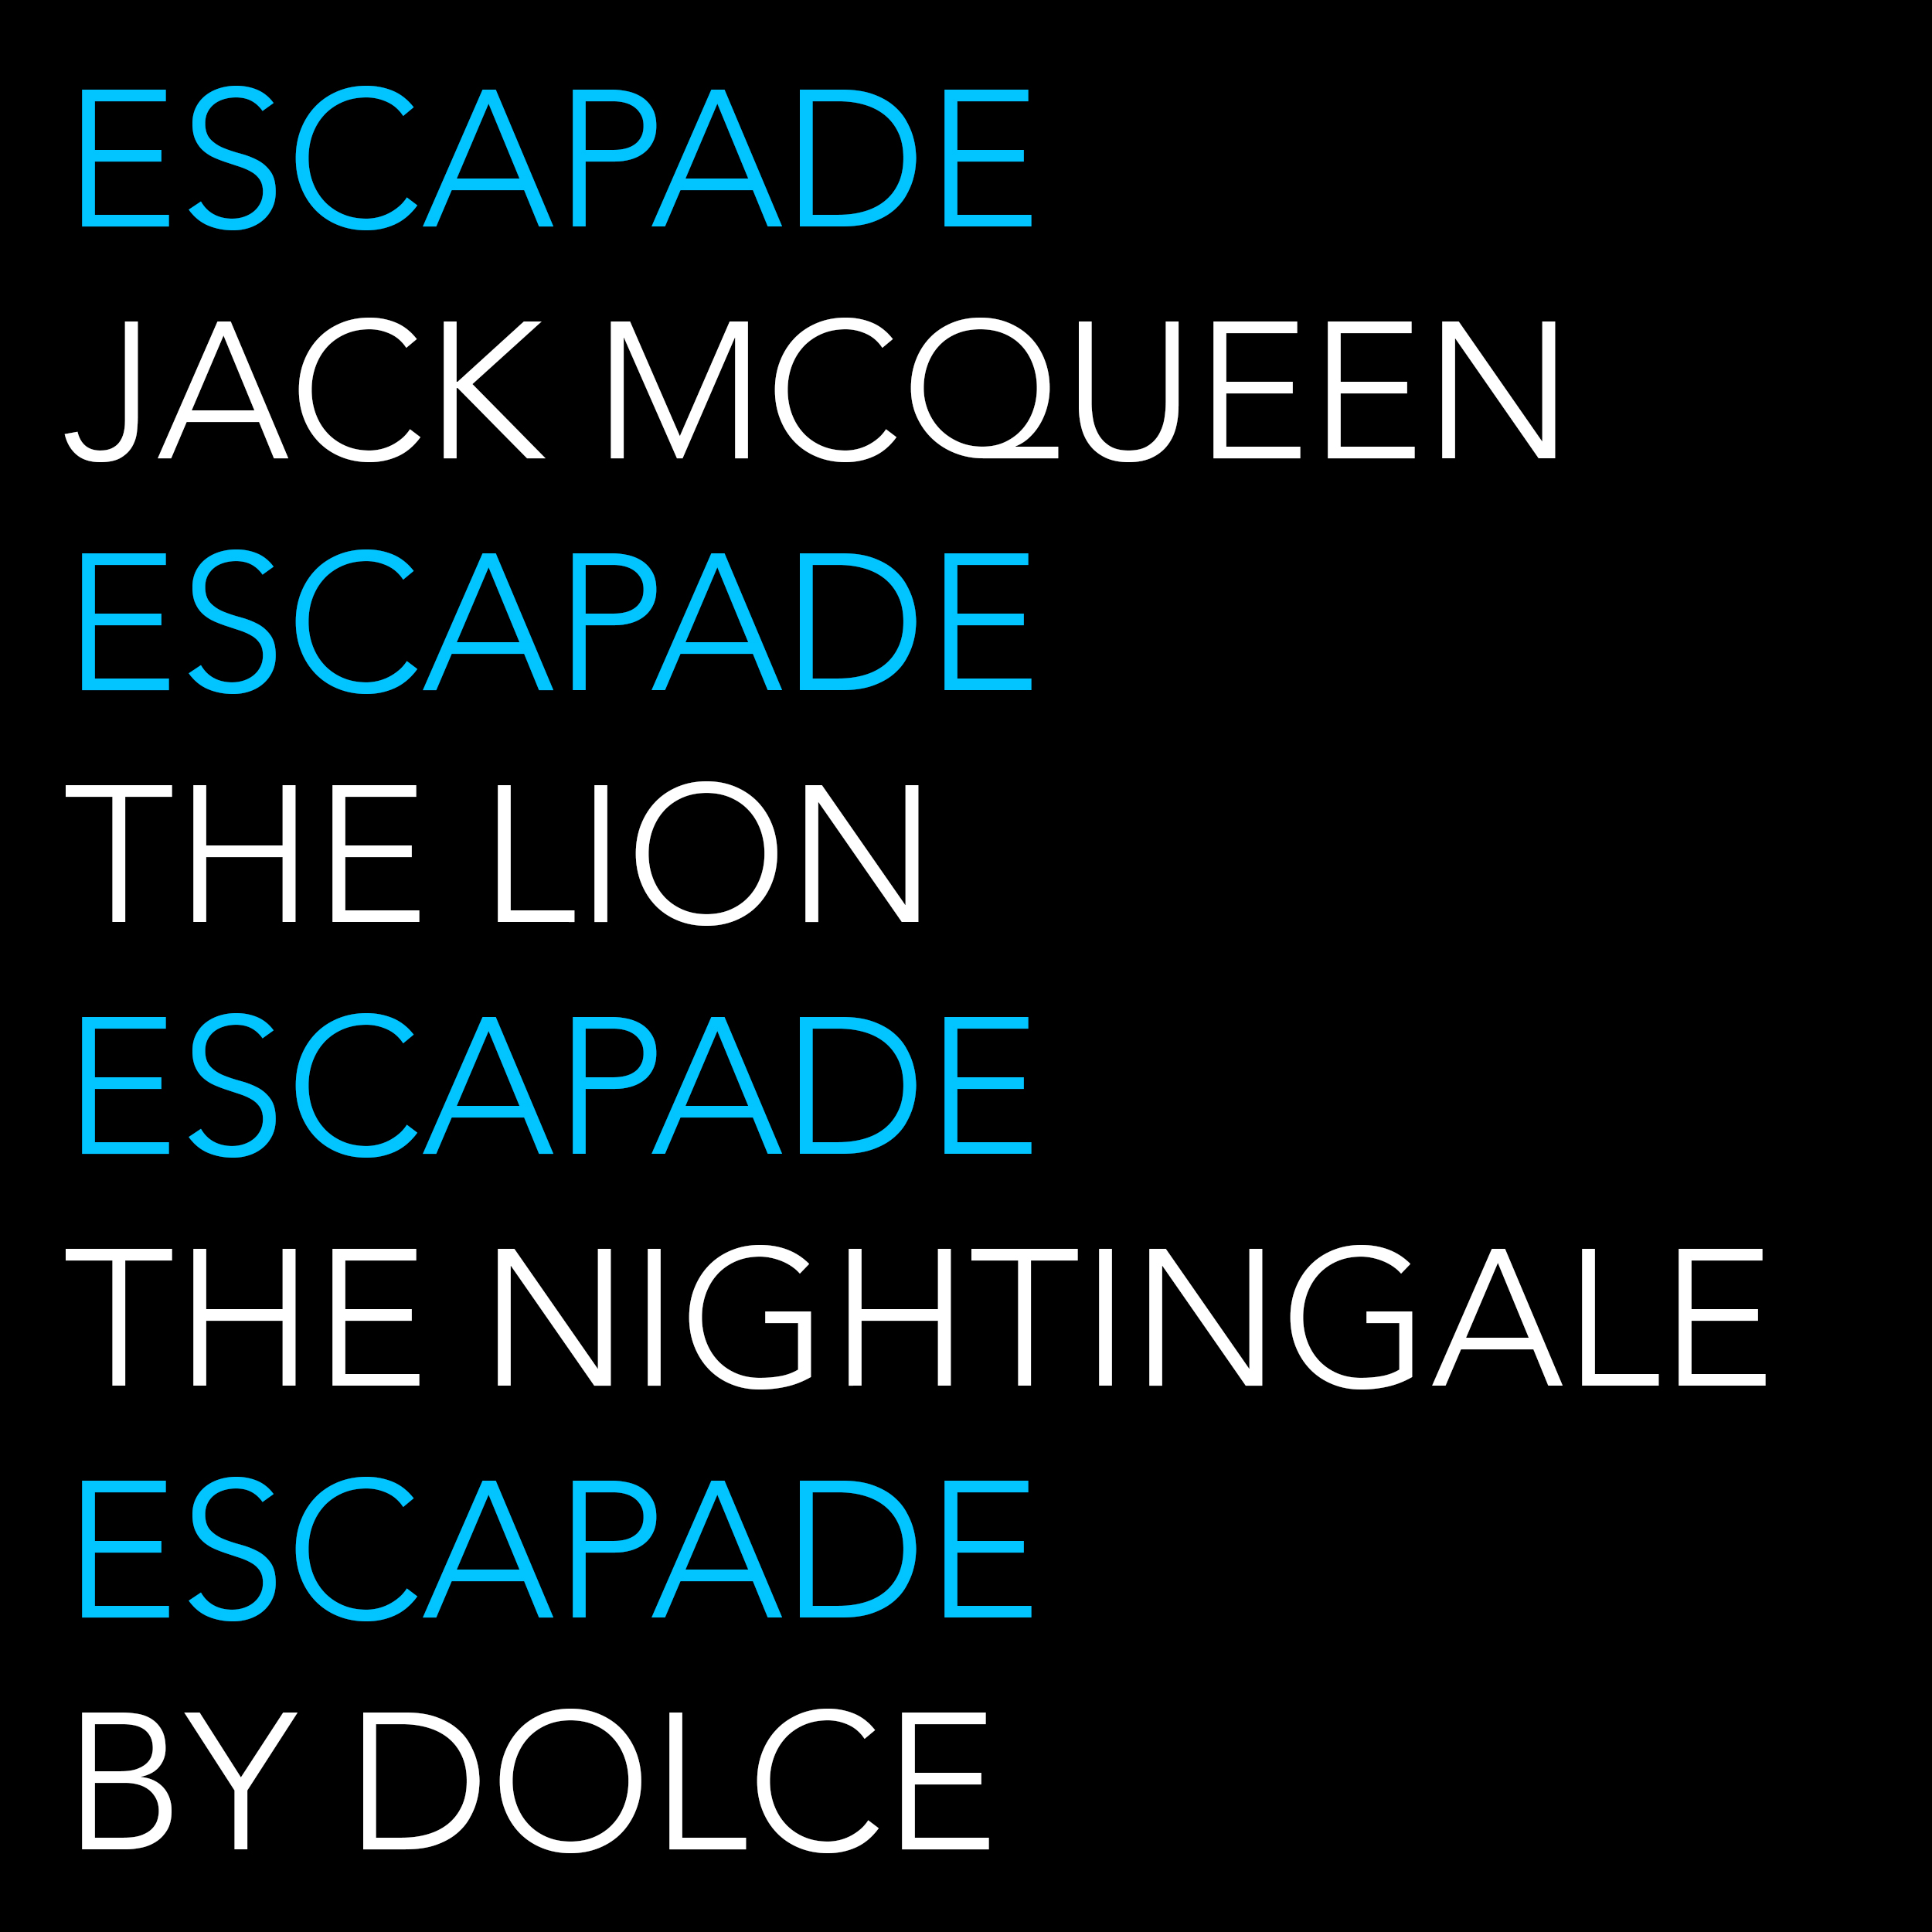 DOLCE Escapade Blue text art